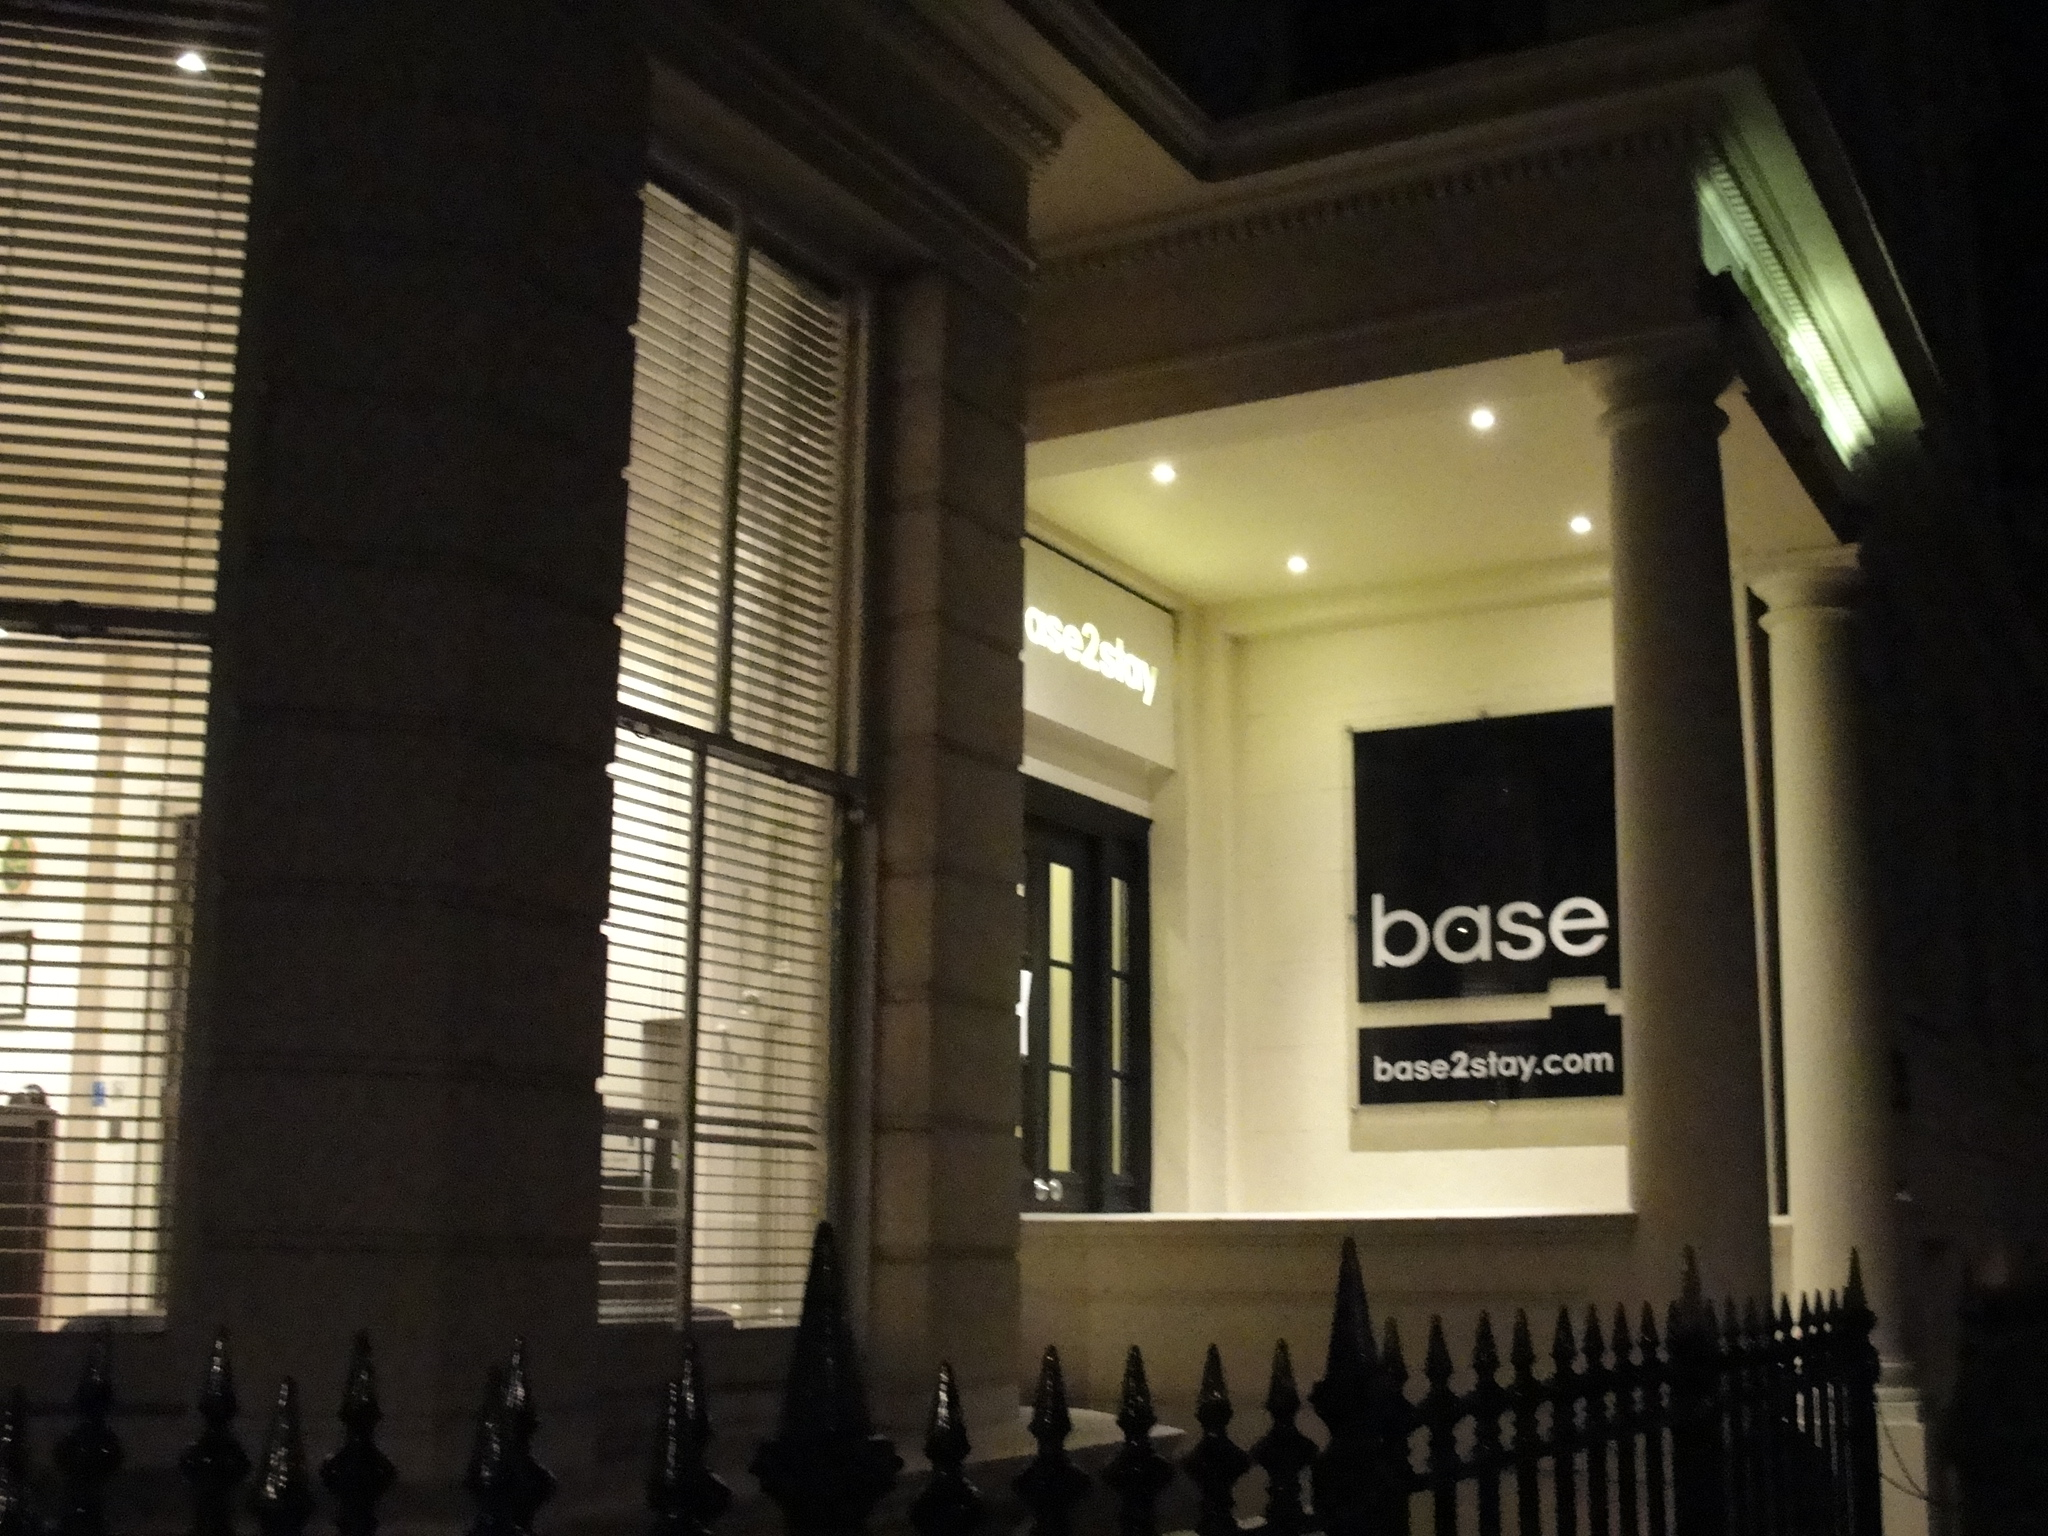 base2stay hotel in London